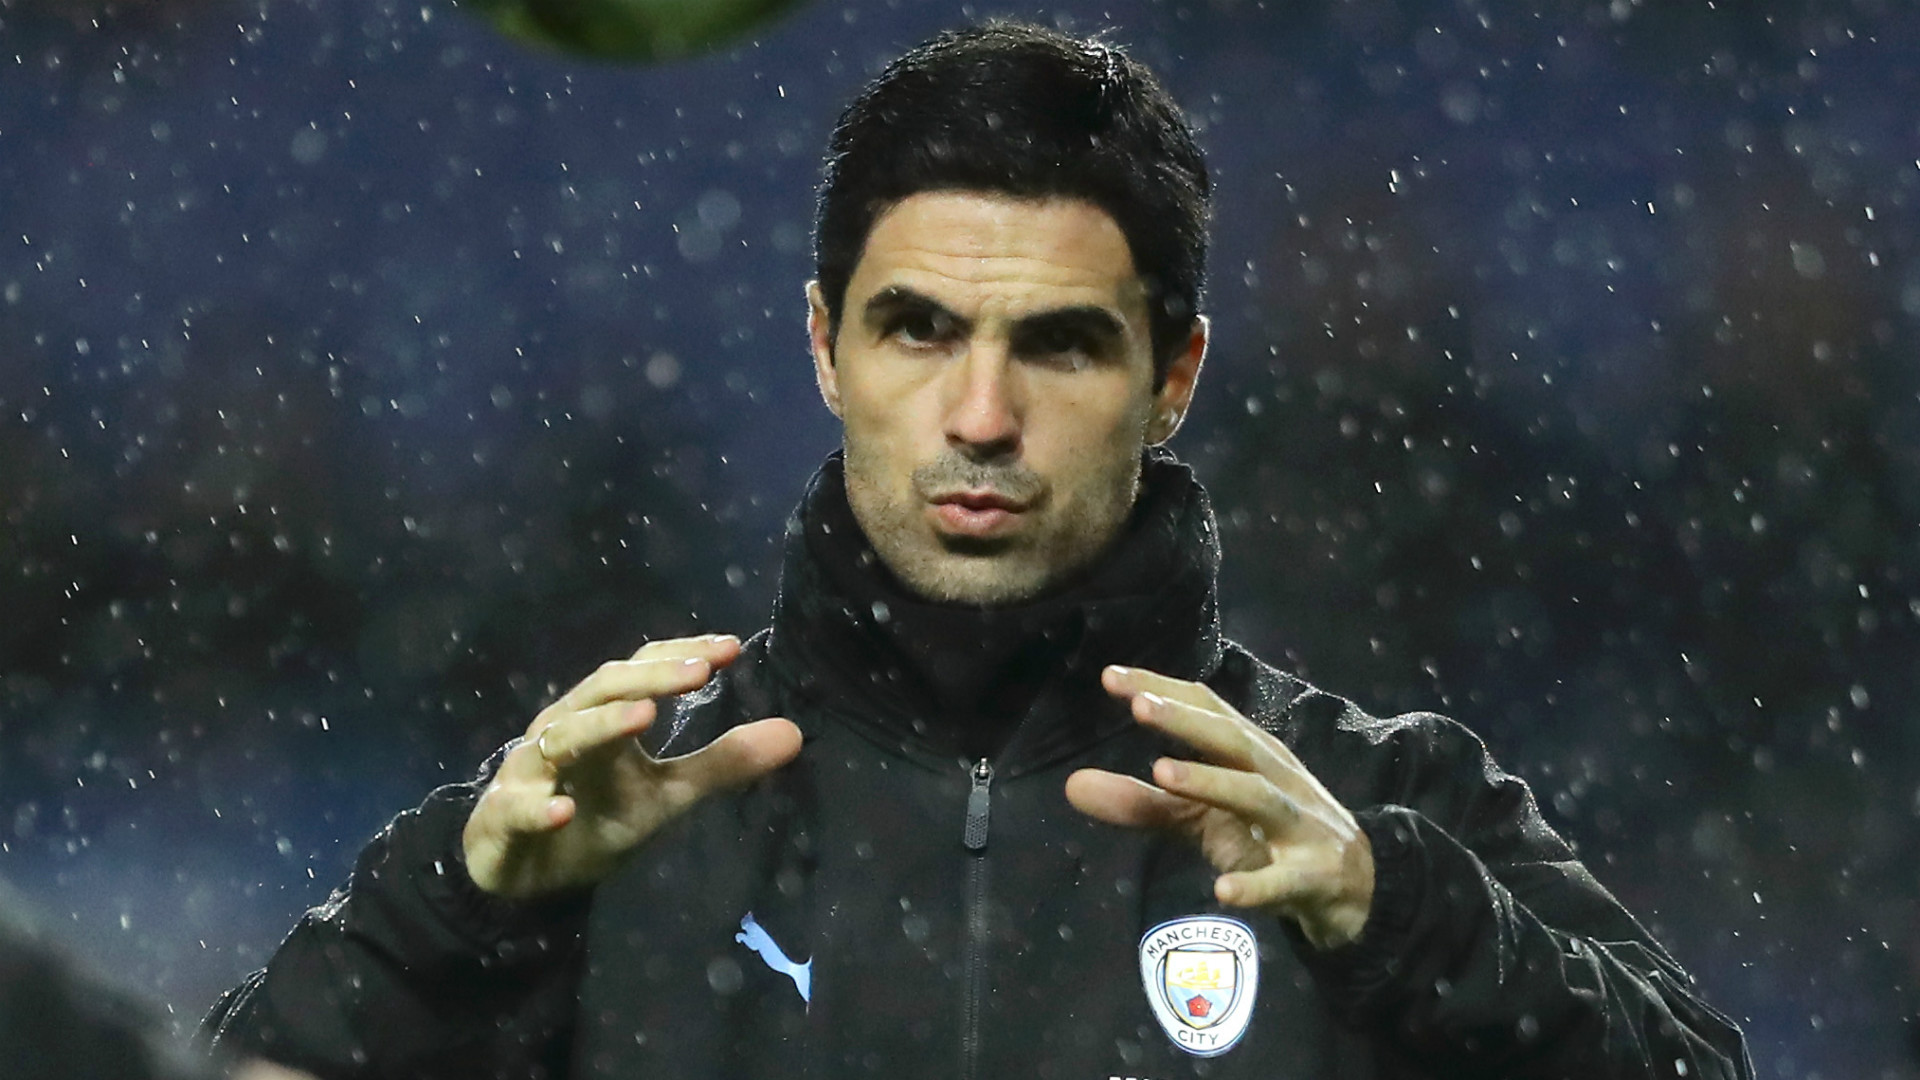 Arsene Wenger: Mikel Arteta will need help as Gunners boss